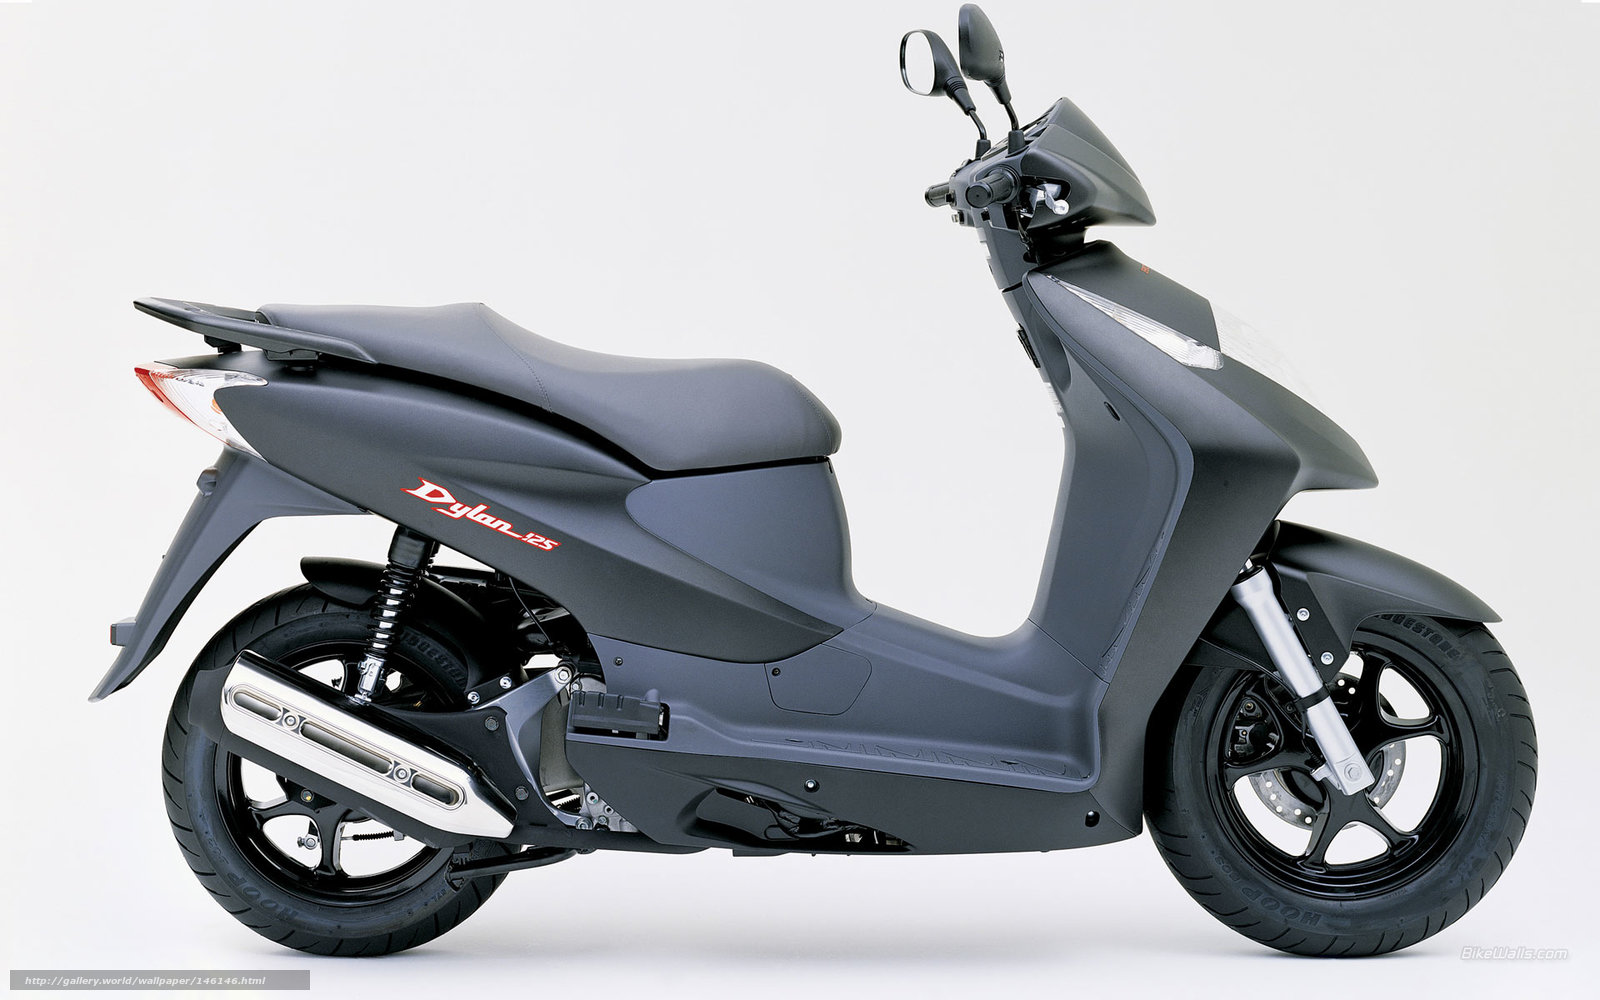 Compra <b>honda</b> dio carreras online al por mayor de China, Mayoristas ...